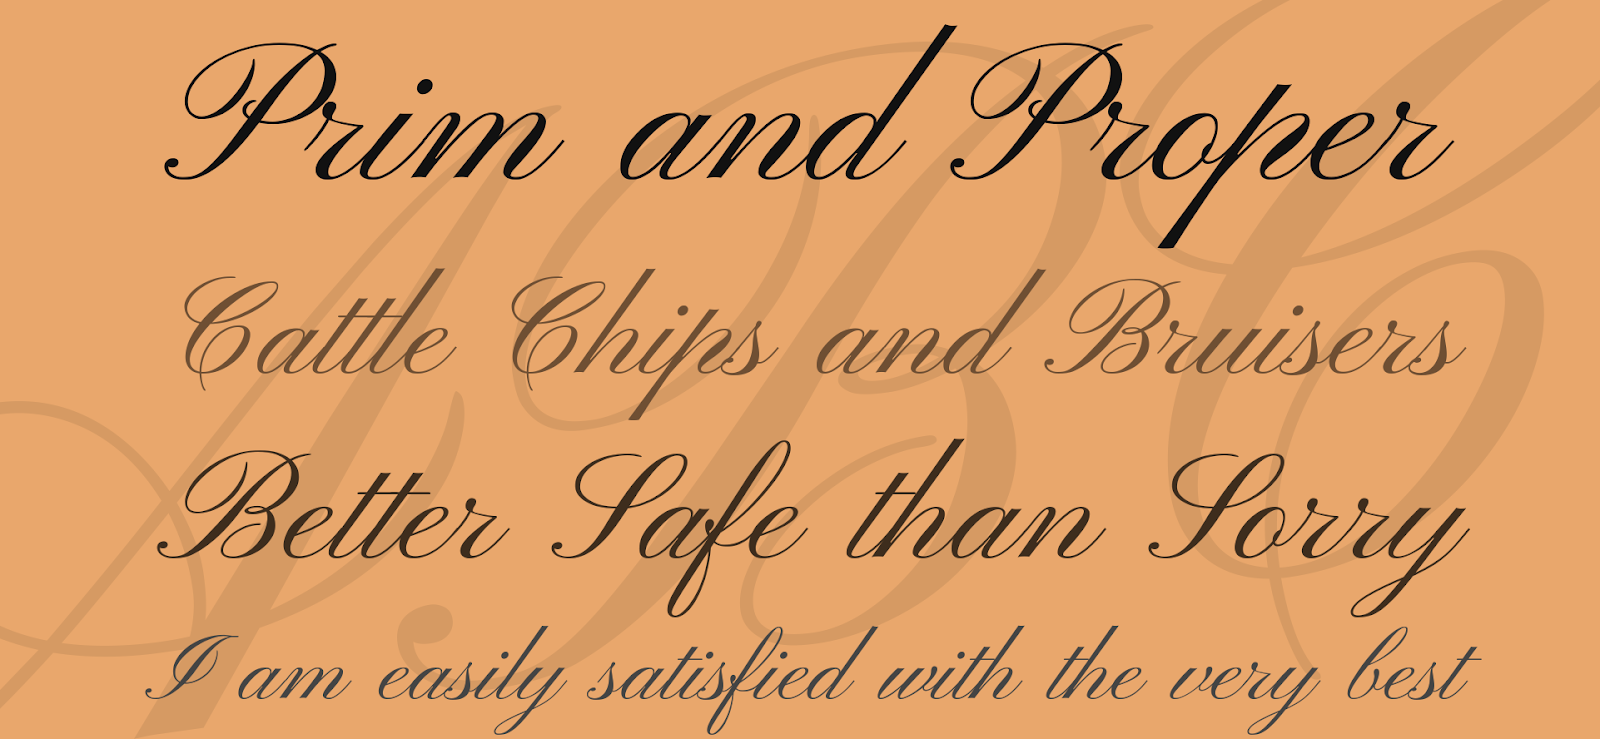 Old-fashioned calligraphy font called Pinyon Script